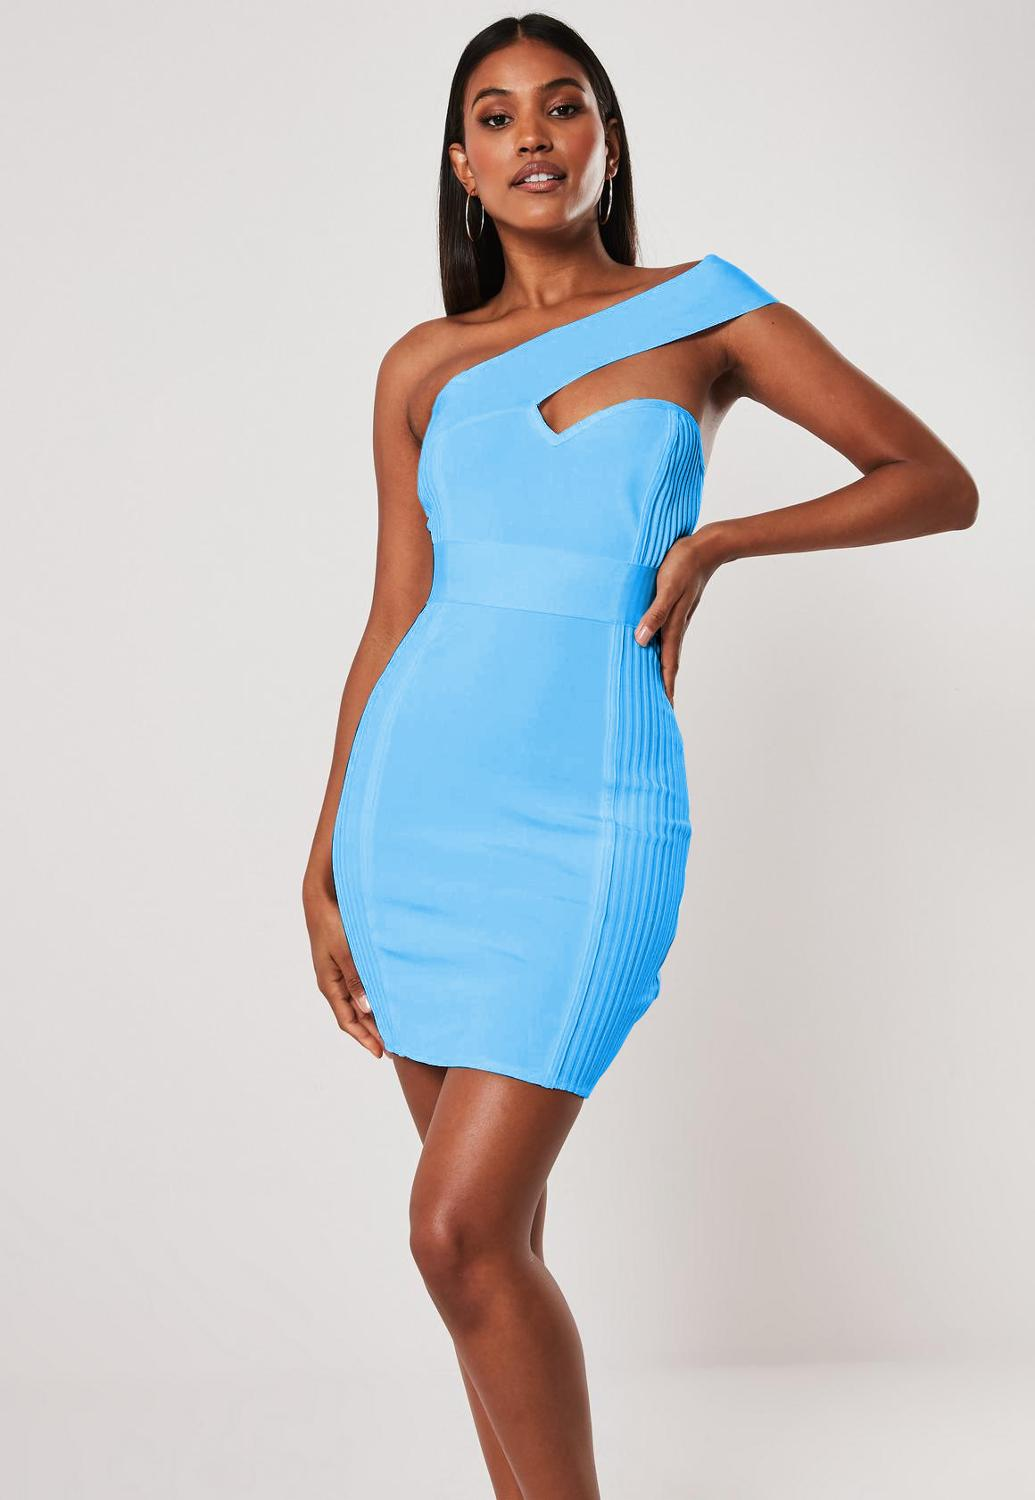 Top Quality Skyblue and Pink Color Ladies HL Bandage Dress One Shoulder Sexy Bodycon Mini Dress Club Night Dress